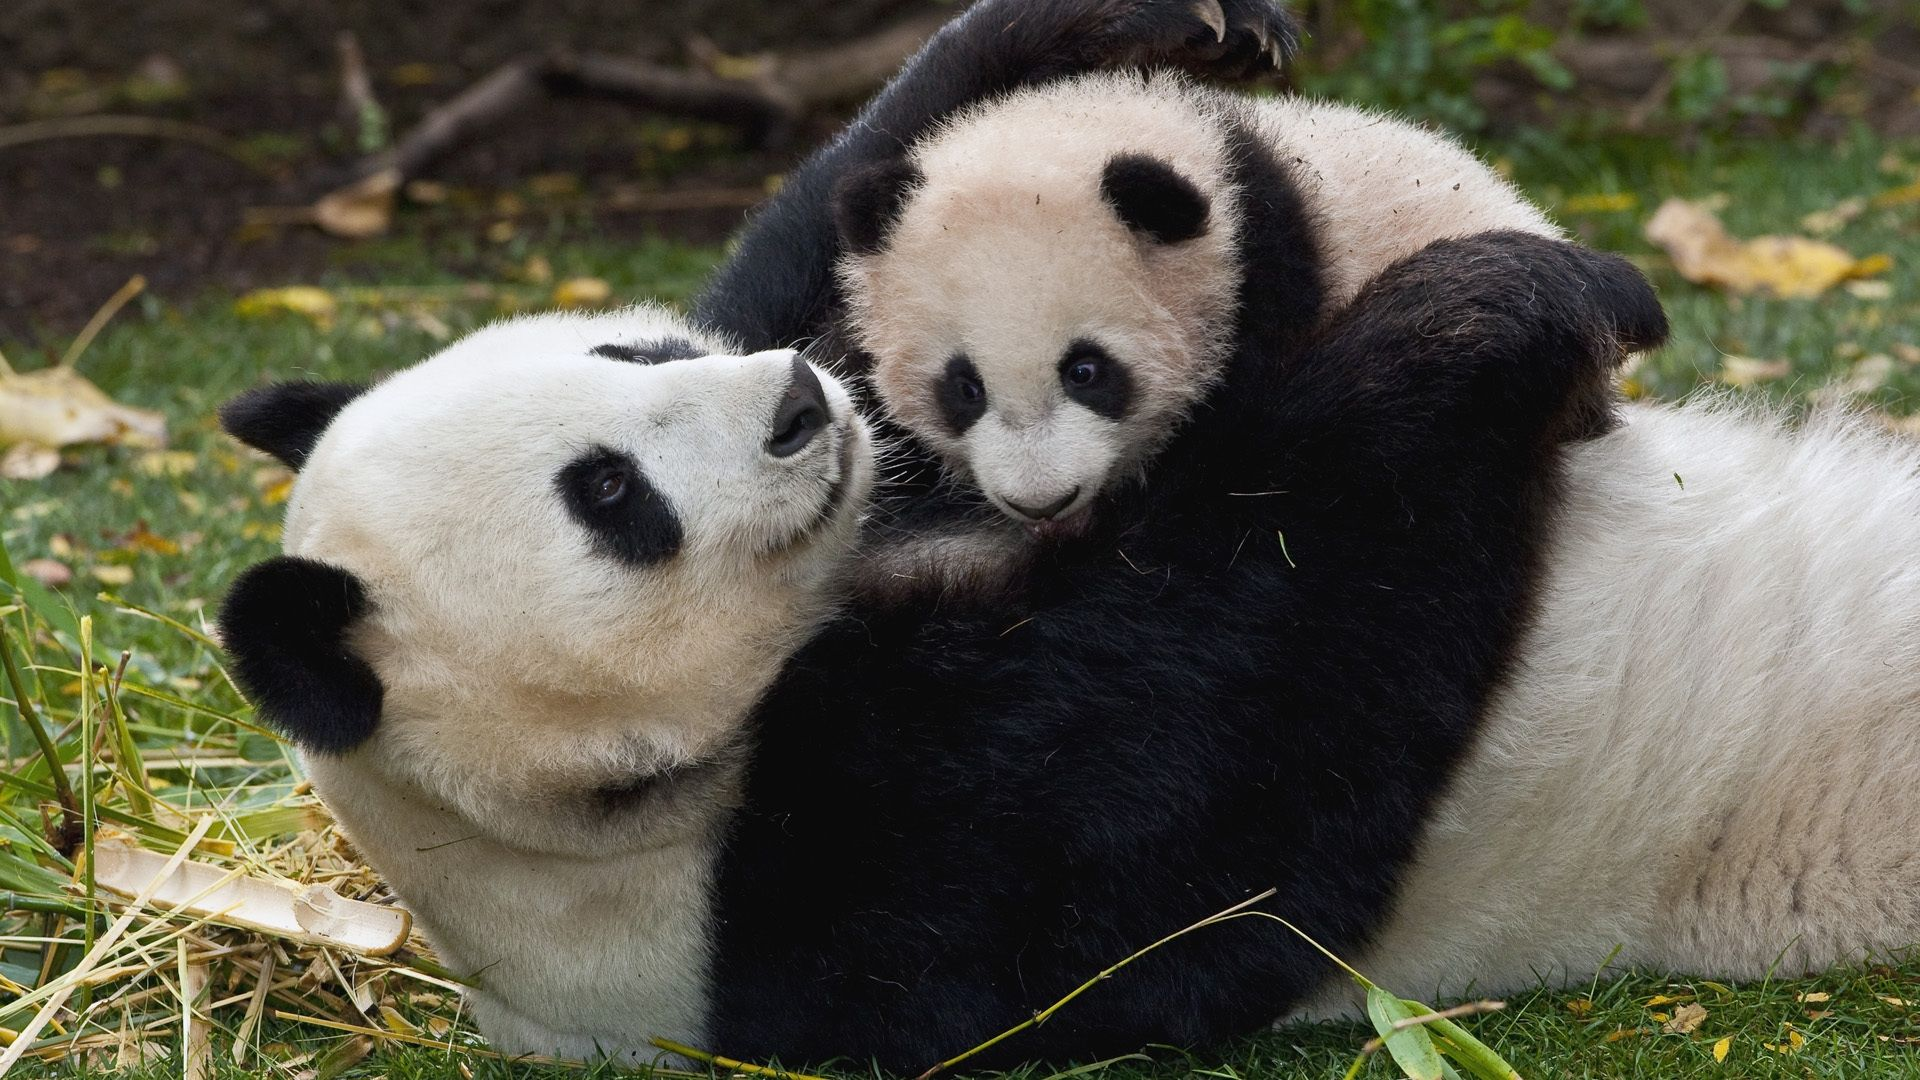 20 Best Panda Wallpaper For Your Desktop